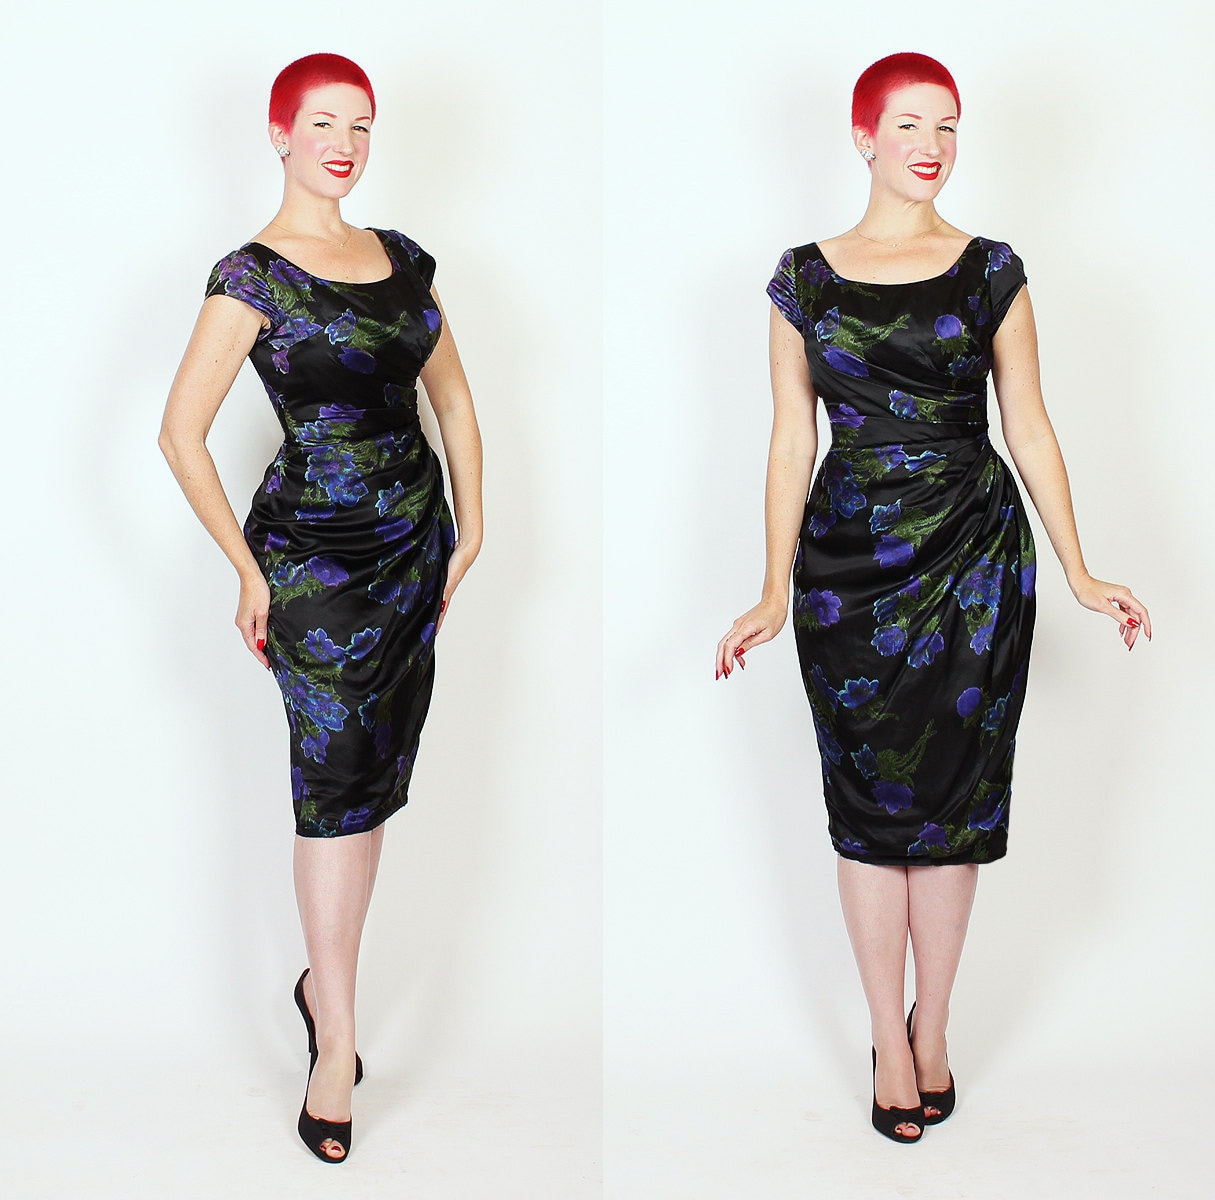 DESIGNER 1950s Inky Black Silk w/ Electric Purple & Blue Rose Motif Hourglass Draped Faux Sarong Cocktail Dress by Kay Selig New York - M